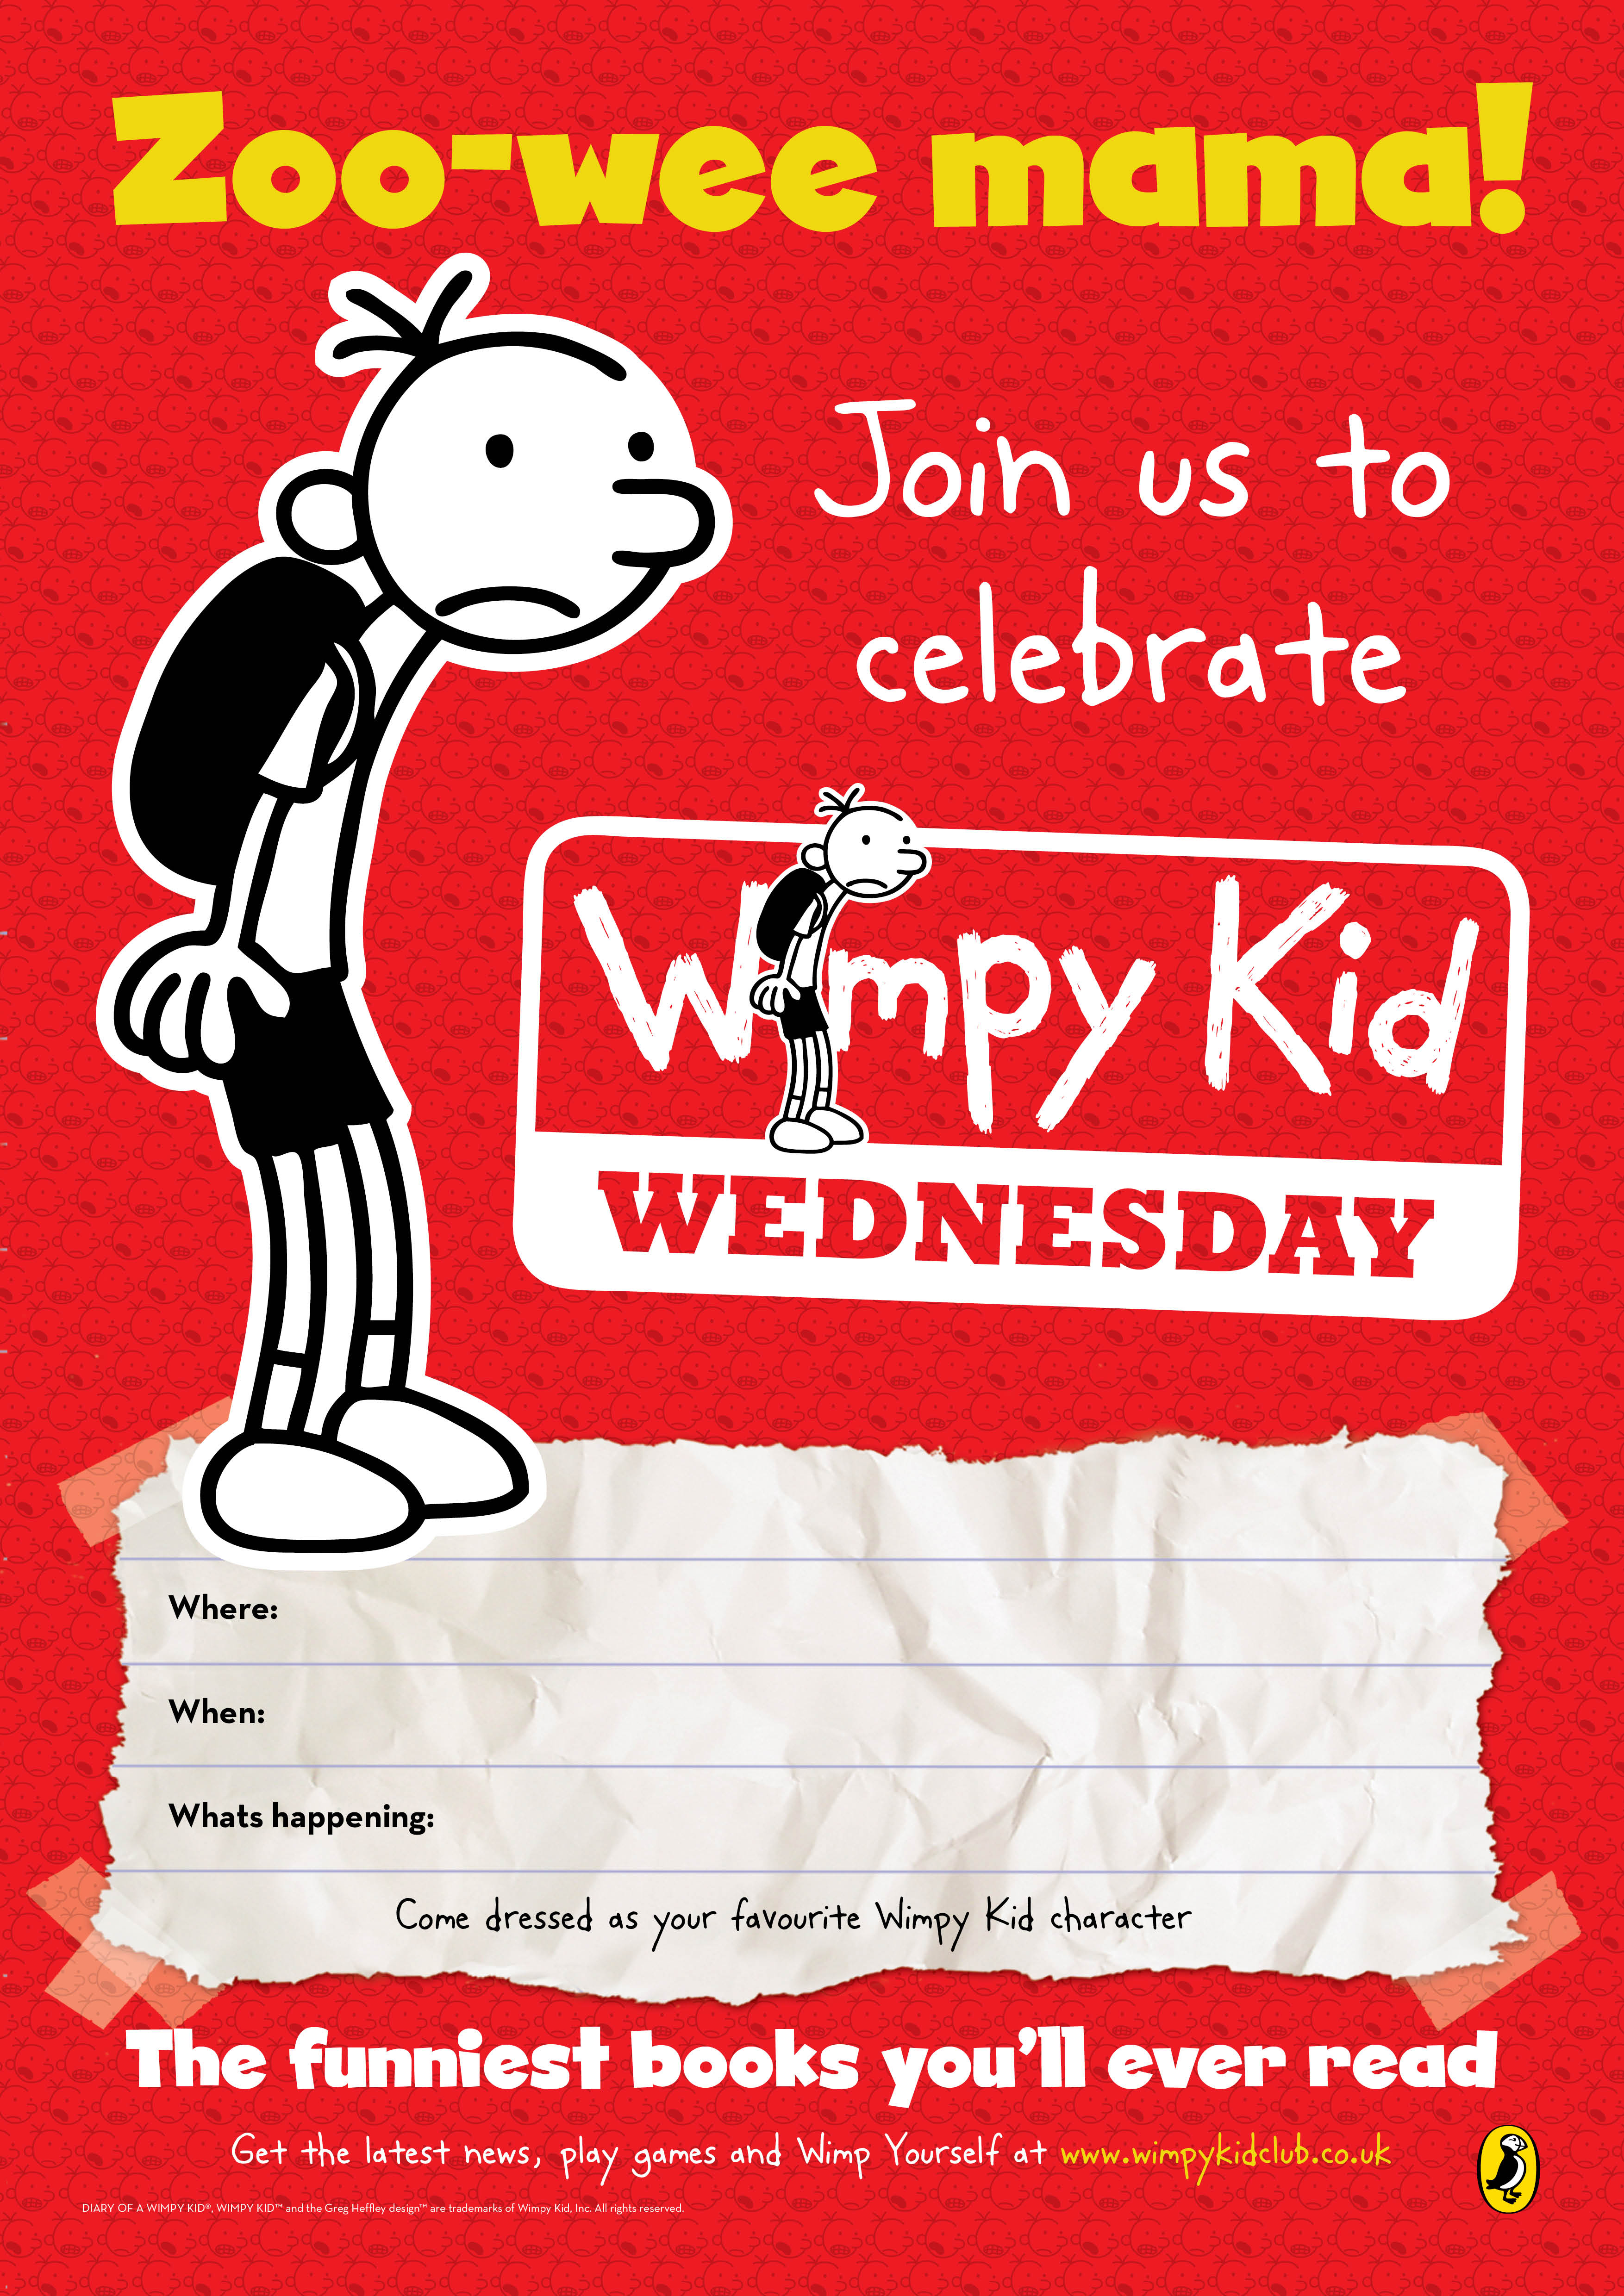 Teachers Resources | Wimpy Kid Club | Diary Of A Wimpy Kid Printable Worksheets